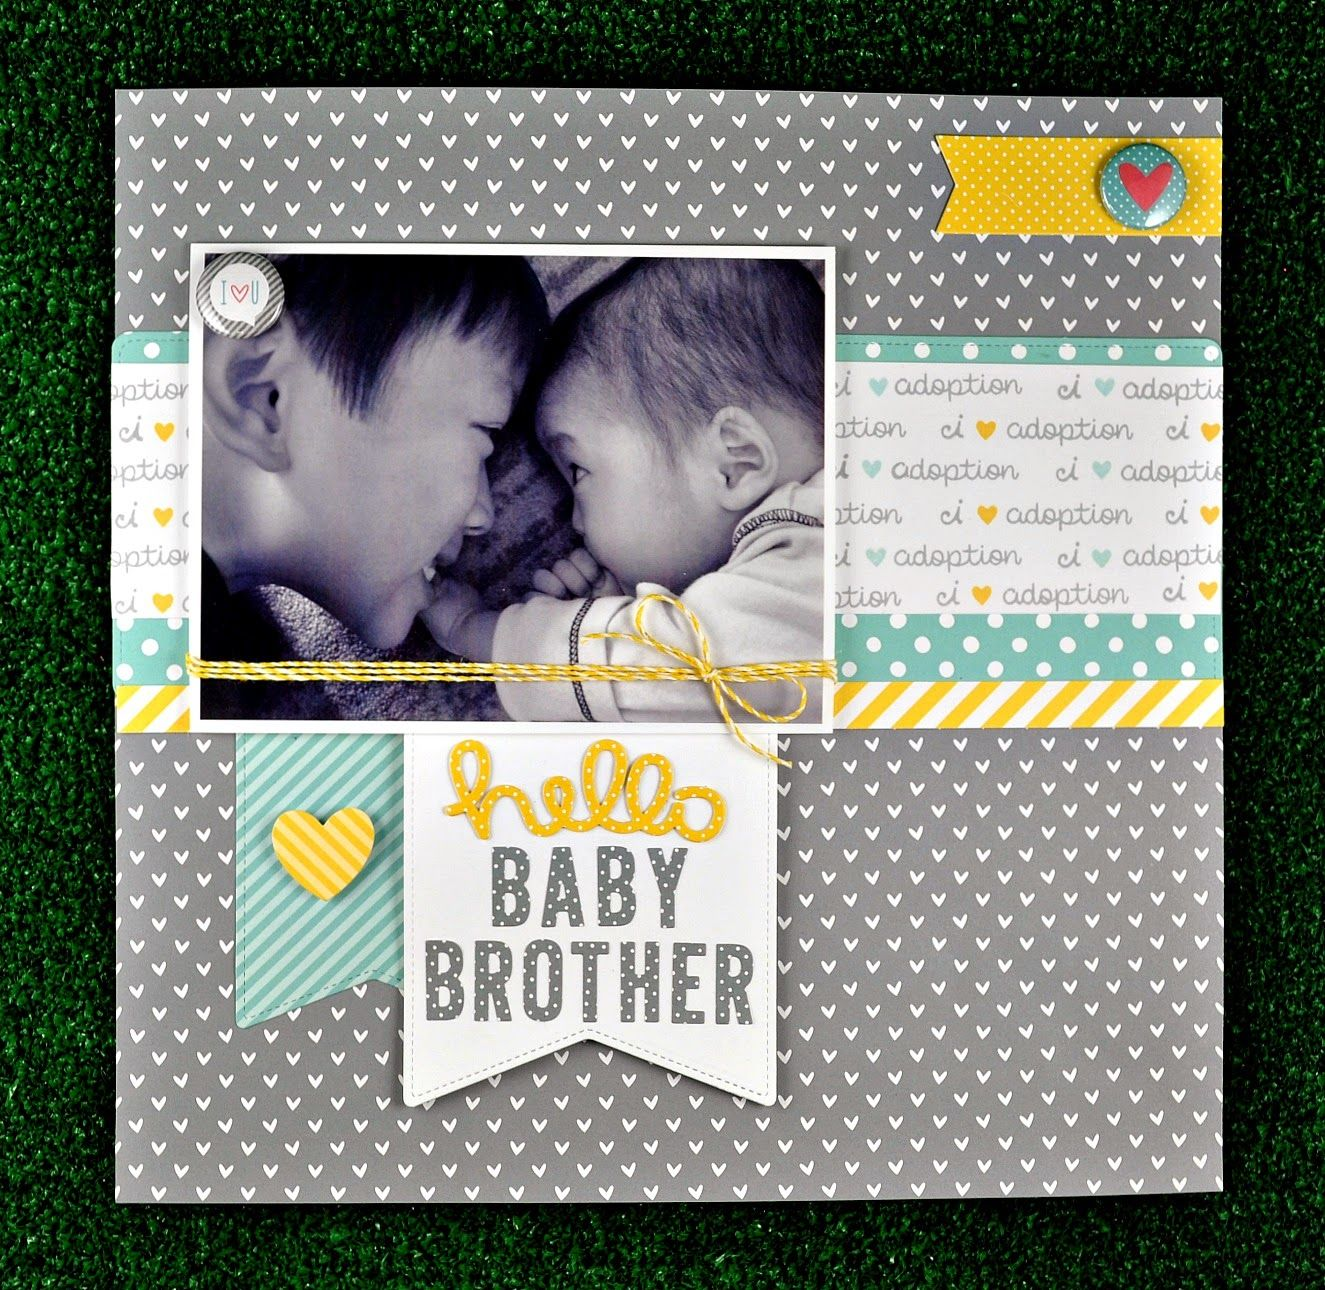 How to scrapbook 8x8 layouts - Our Friend Deb Made This Gorgeous Layout Using Let S Polka And Hello Baby I Just Love How She Used The Adoption Sentiment From